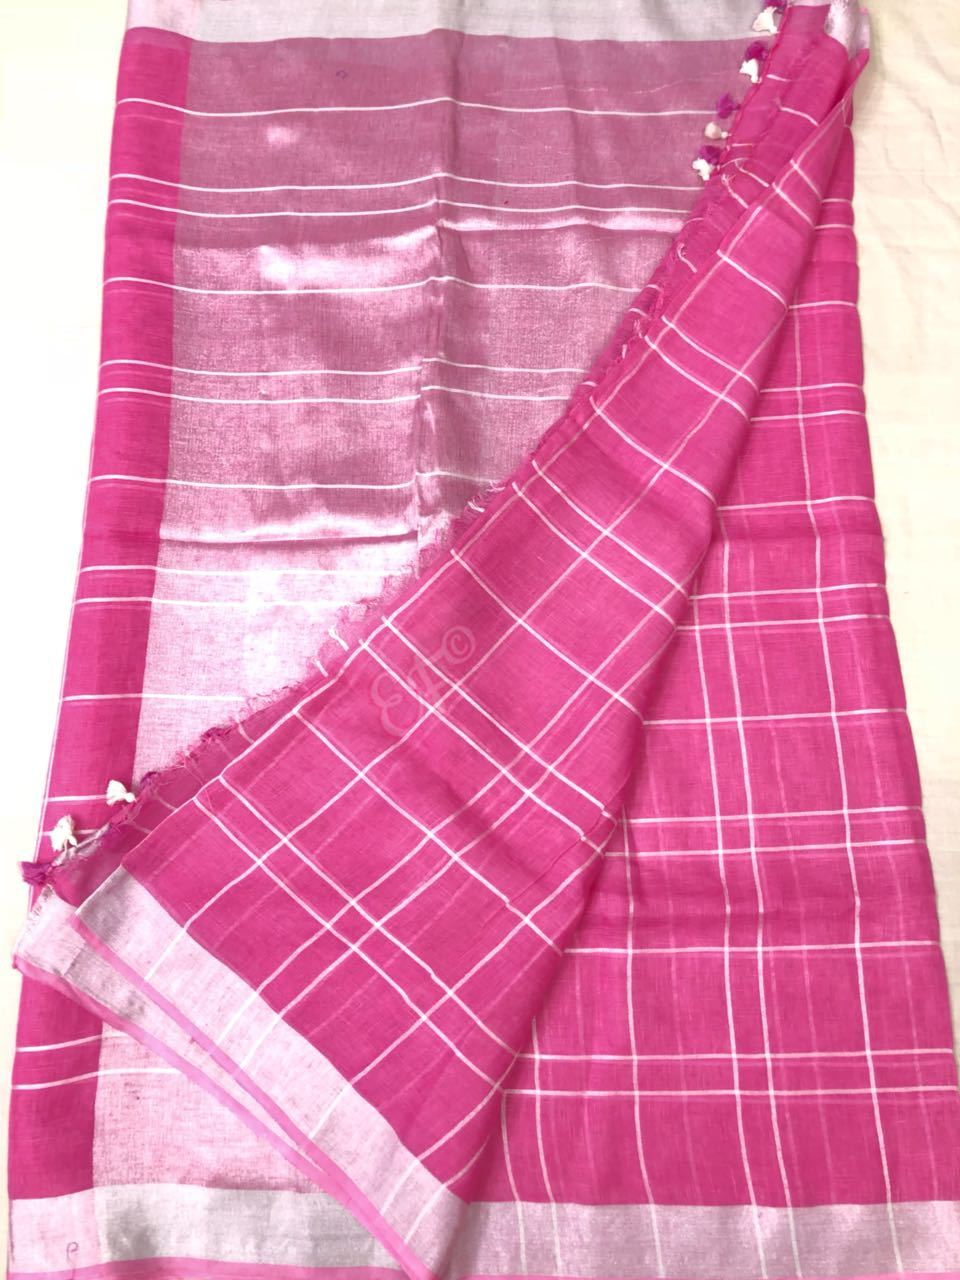 Pure Lenin Cotton Sarees With Checks Design